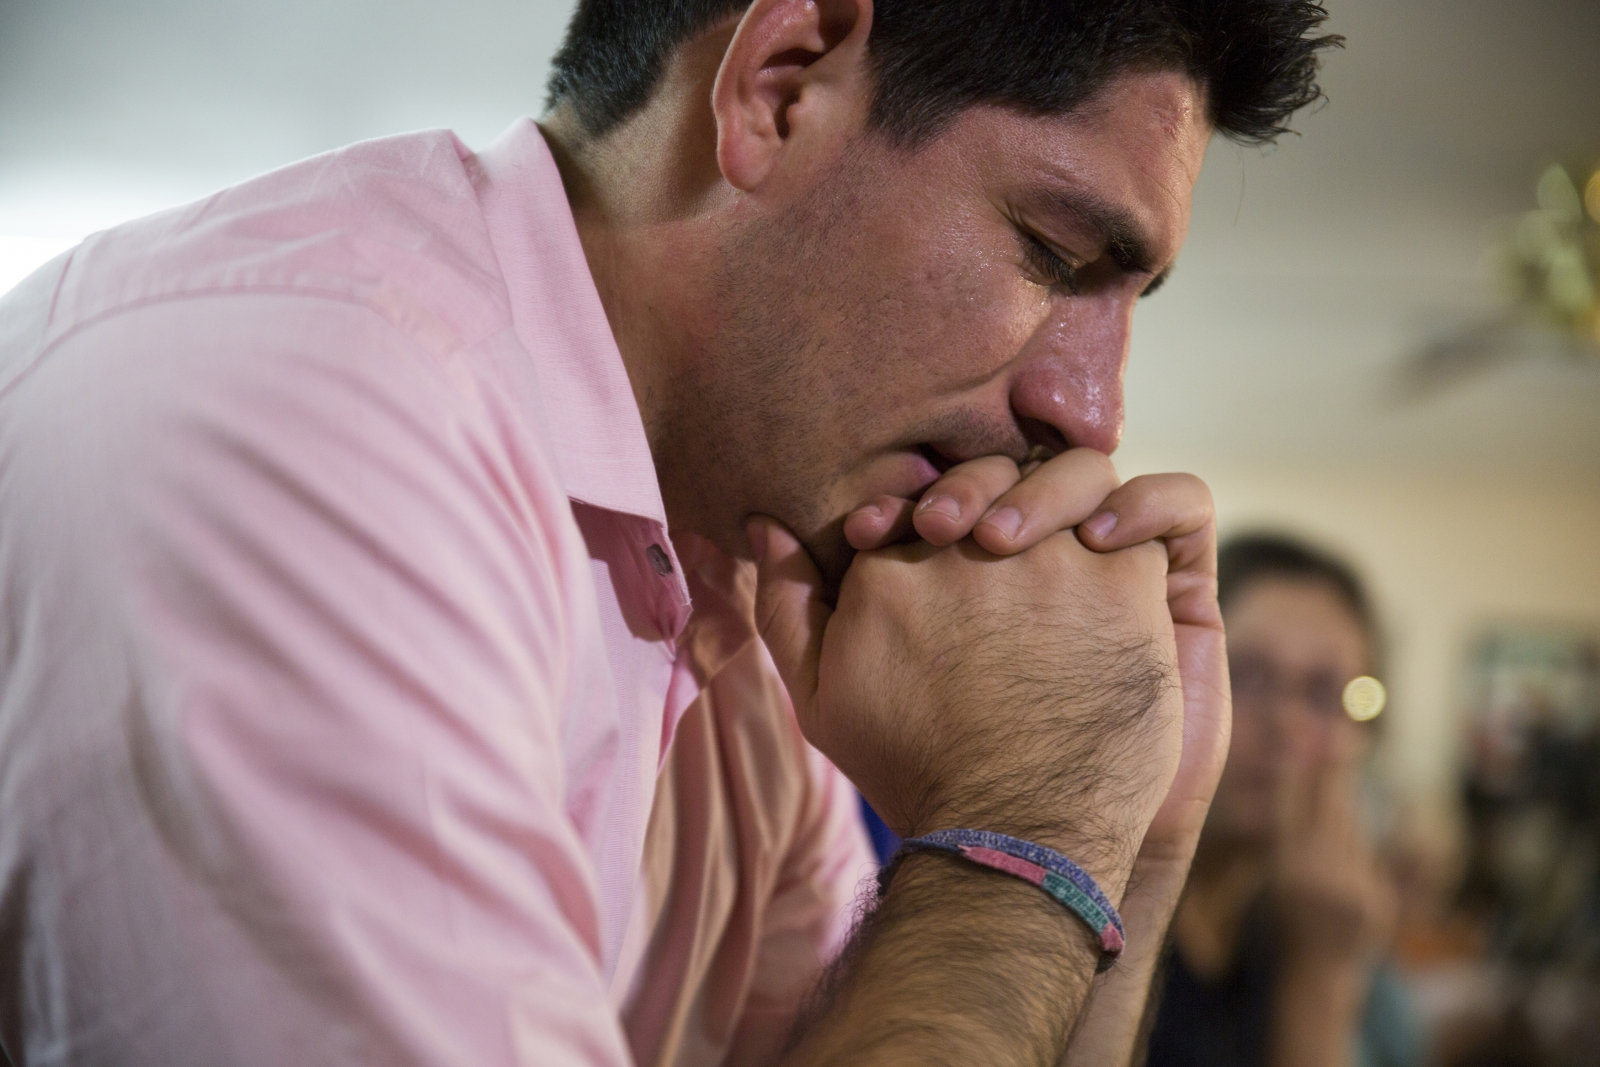 Jose Patino, a DREAMer, becomes emotional while watching U.S. President Barack Obama's national address in Phoenix